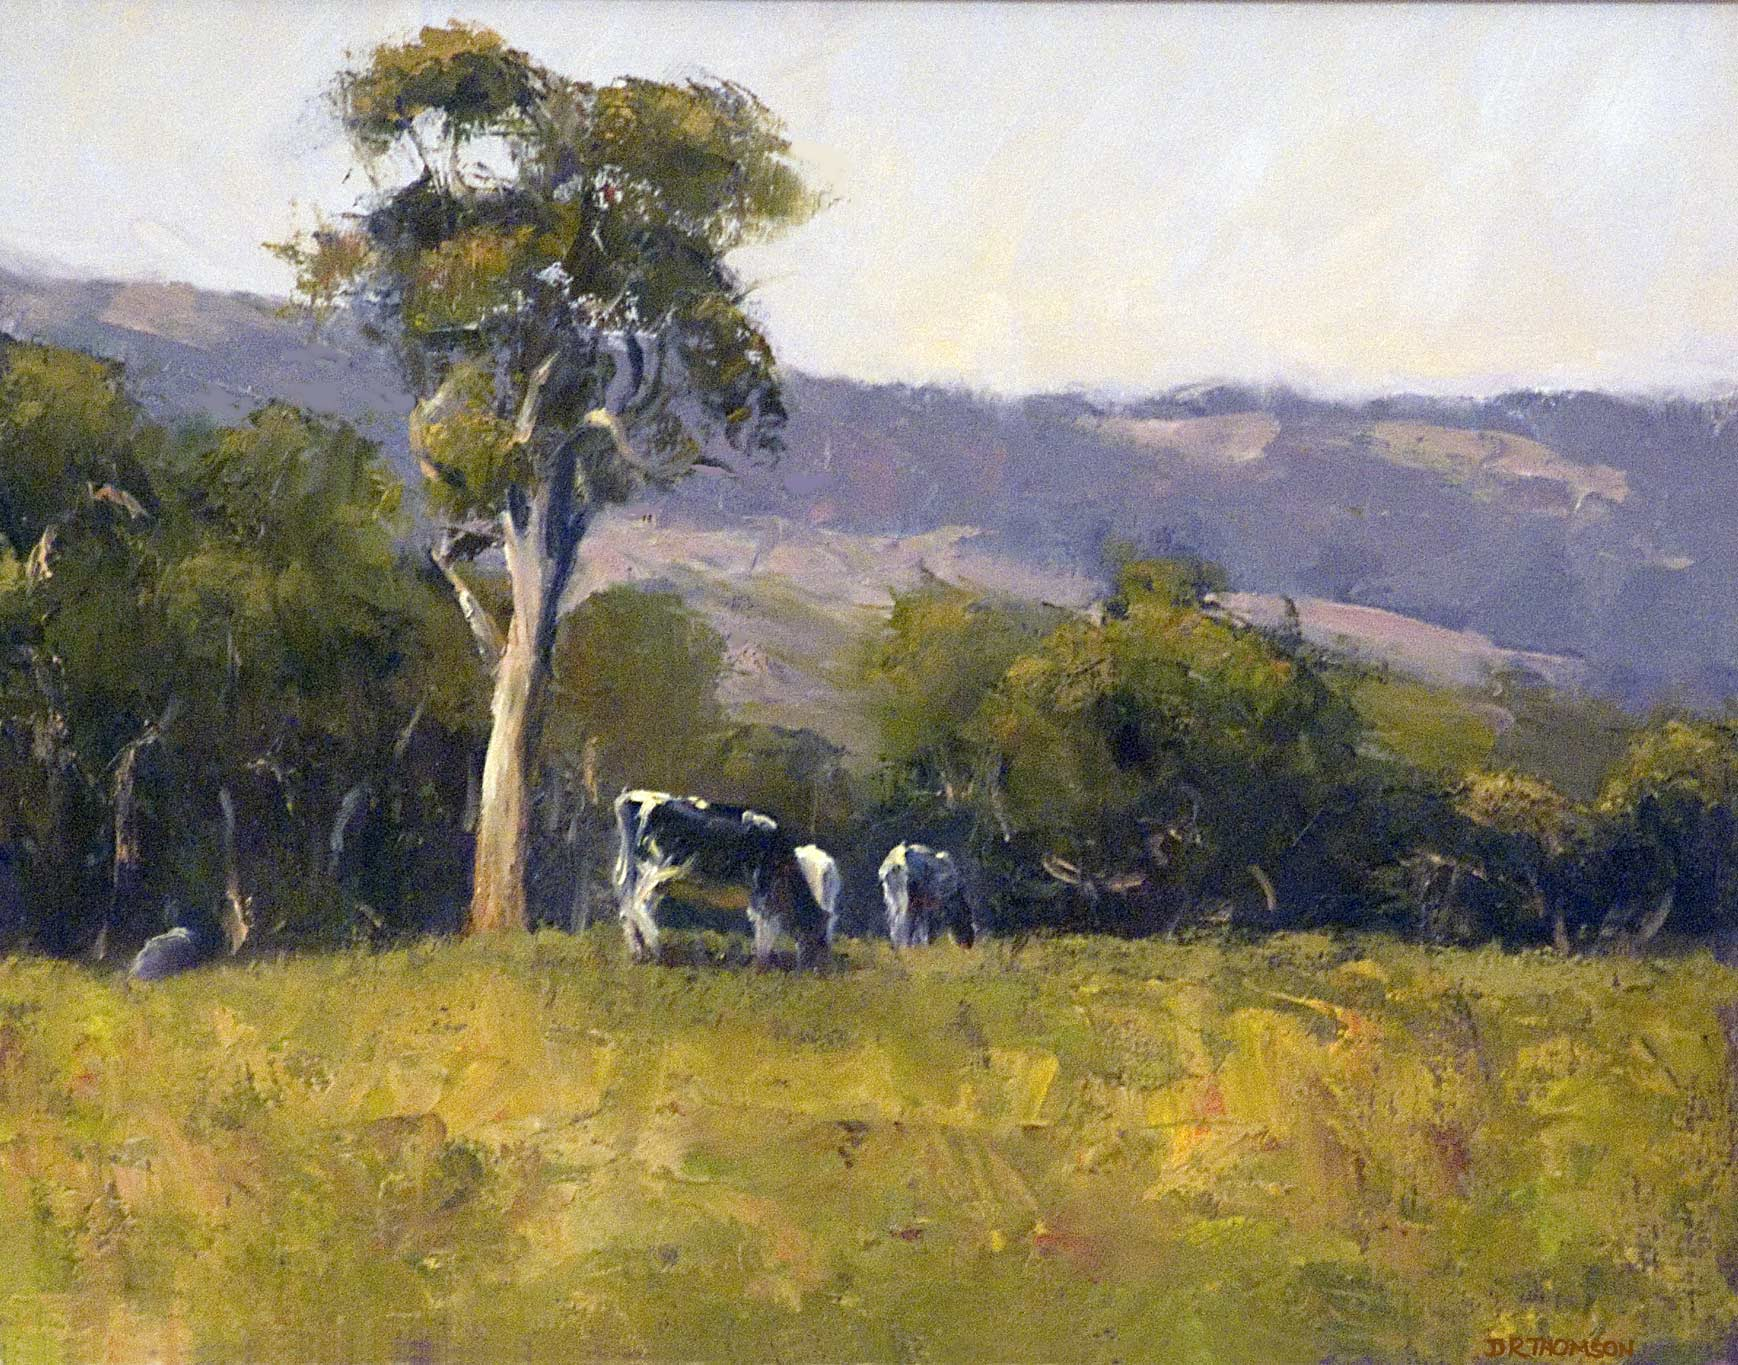 Cows Grazing near Meadows - South Australia